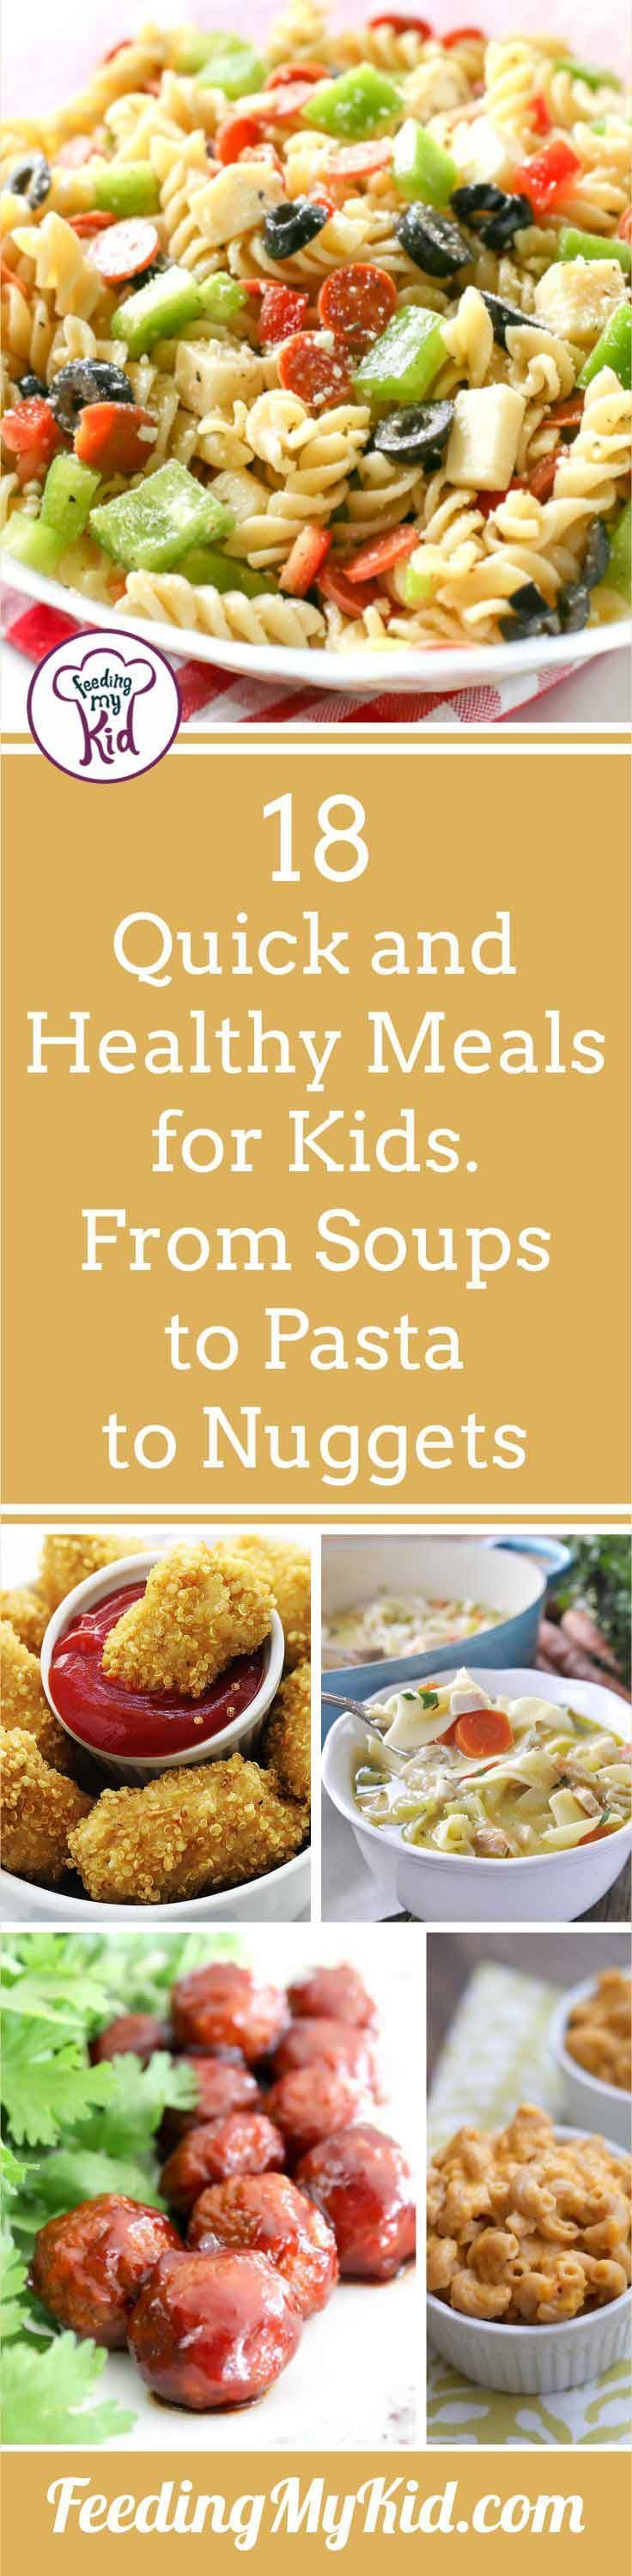 Check Out These Healthy Meals For Kids You Can Make Quickly And Feel Good About Easy Meal